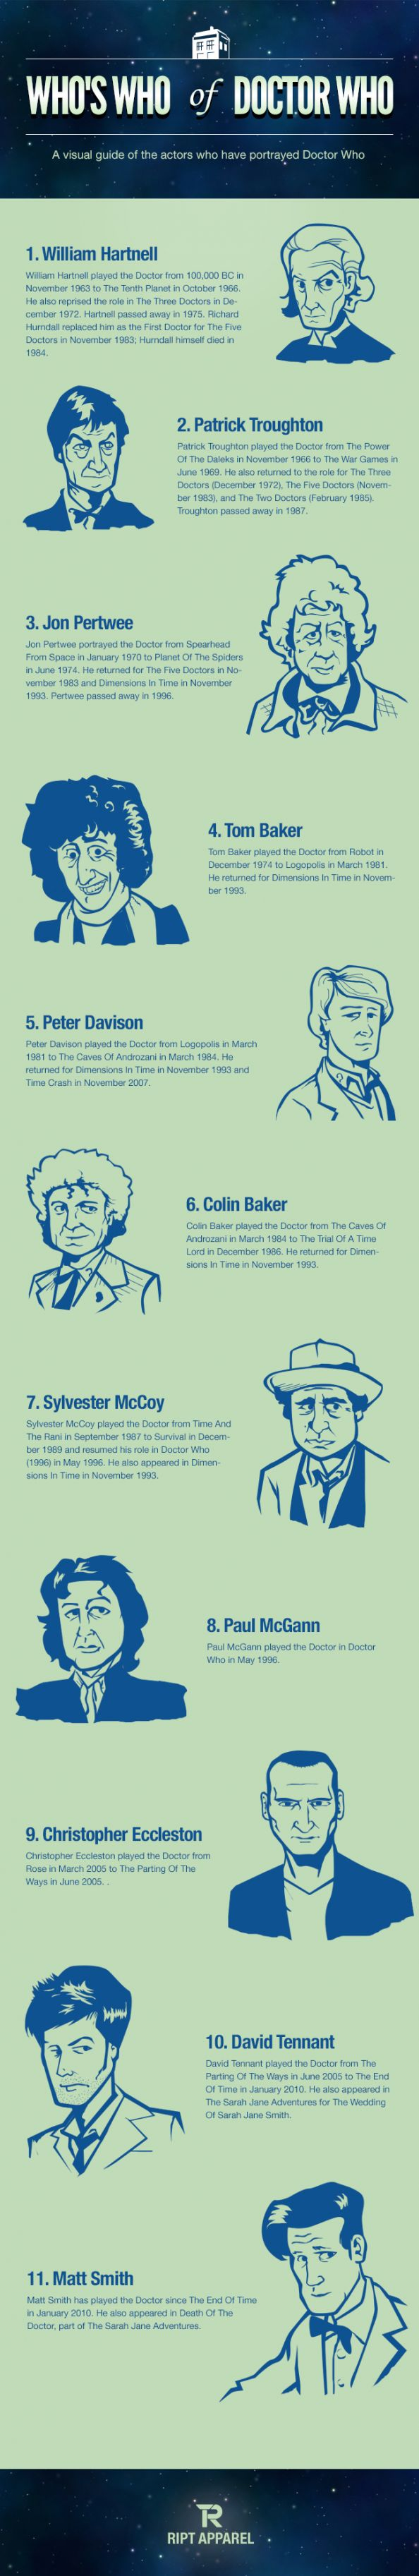 Who's Who of Doctor Who Infographic